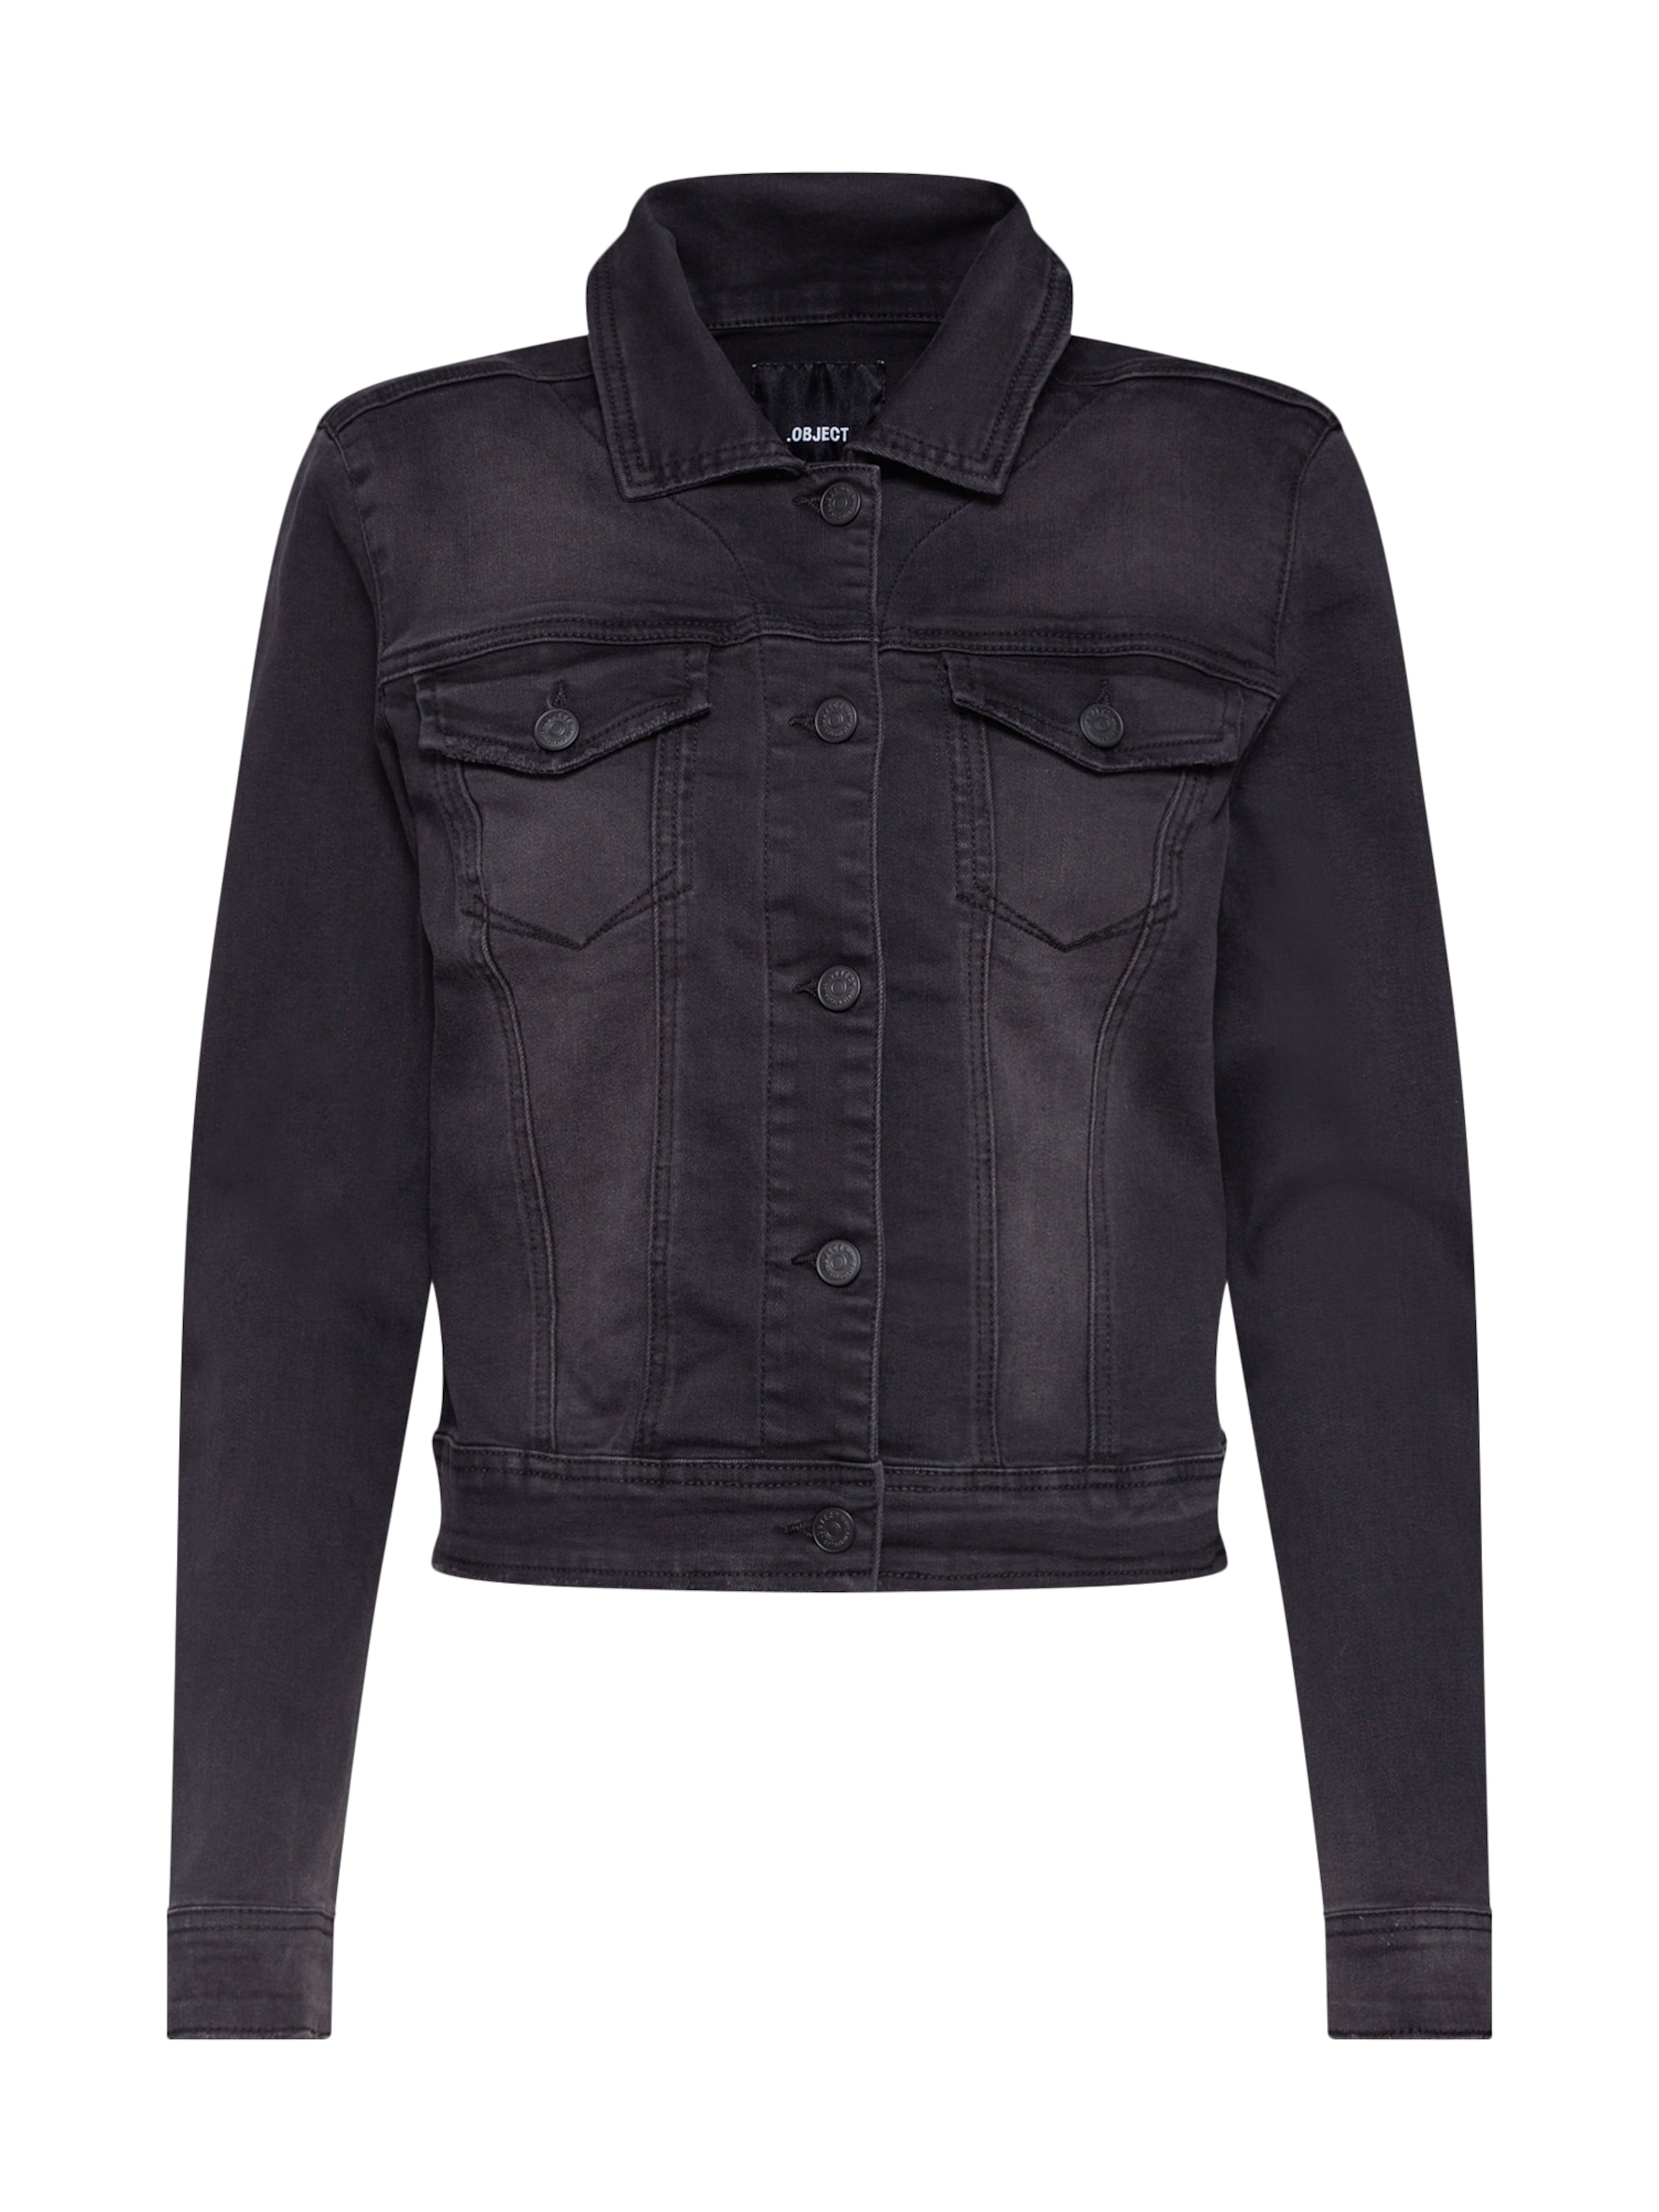 Noir Denim ObjectVeste 'win' In Mi saison 34cAjR5Lq